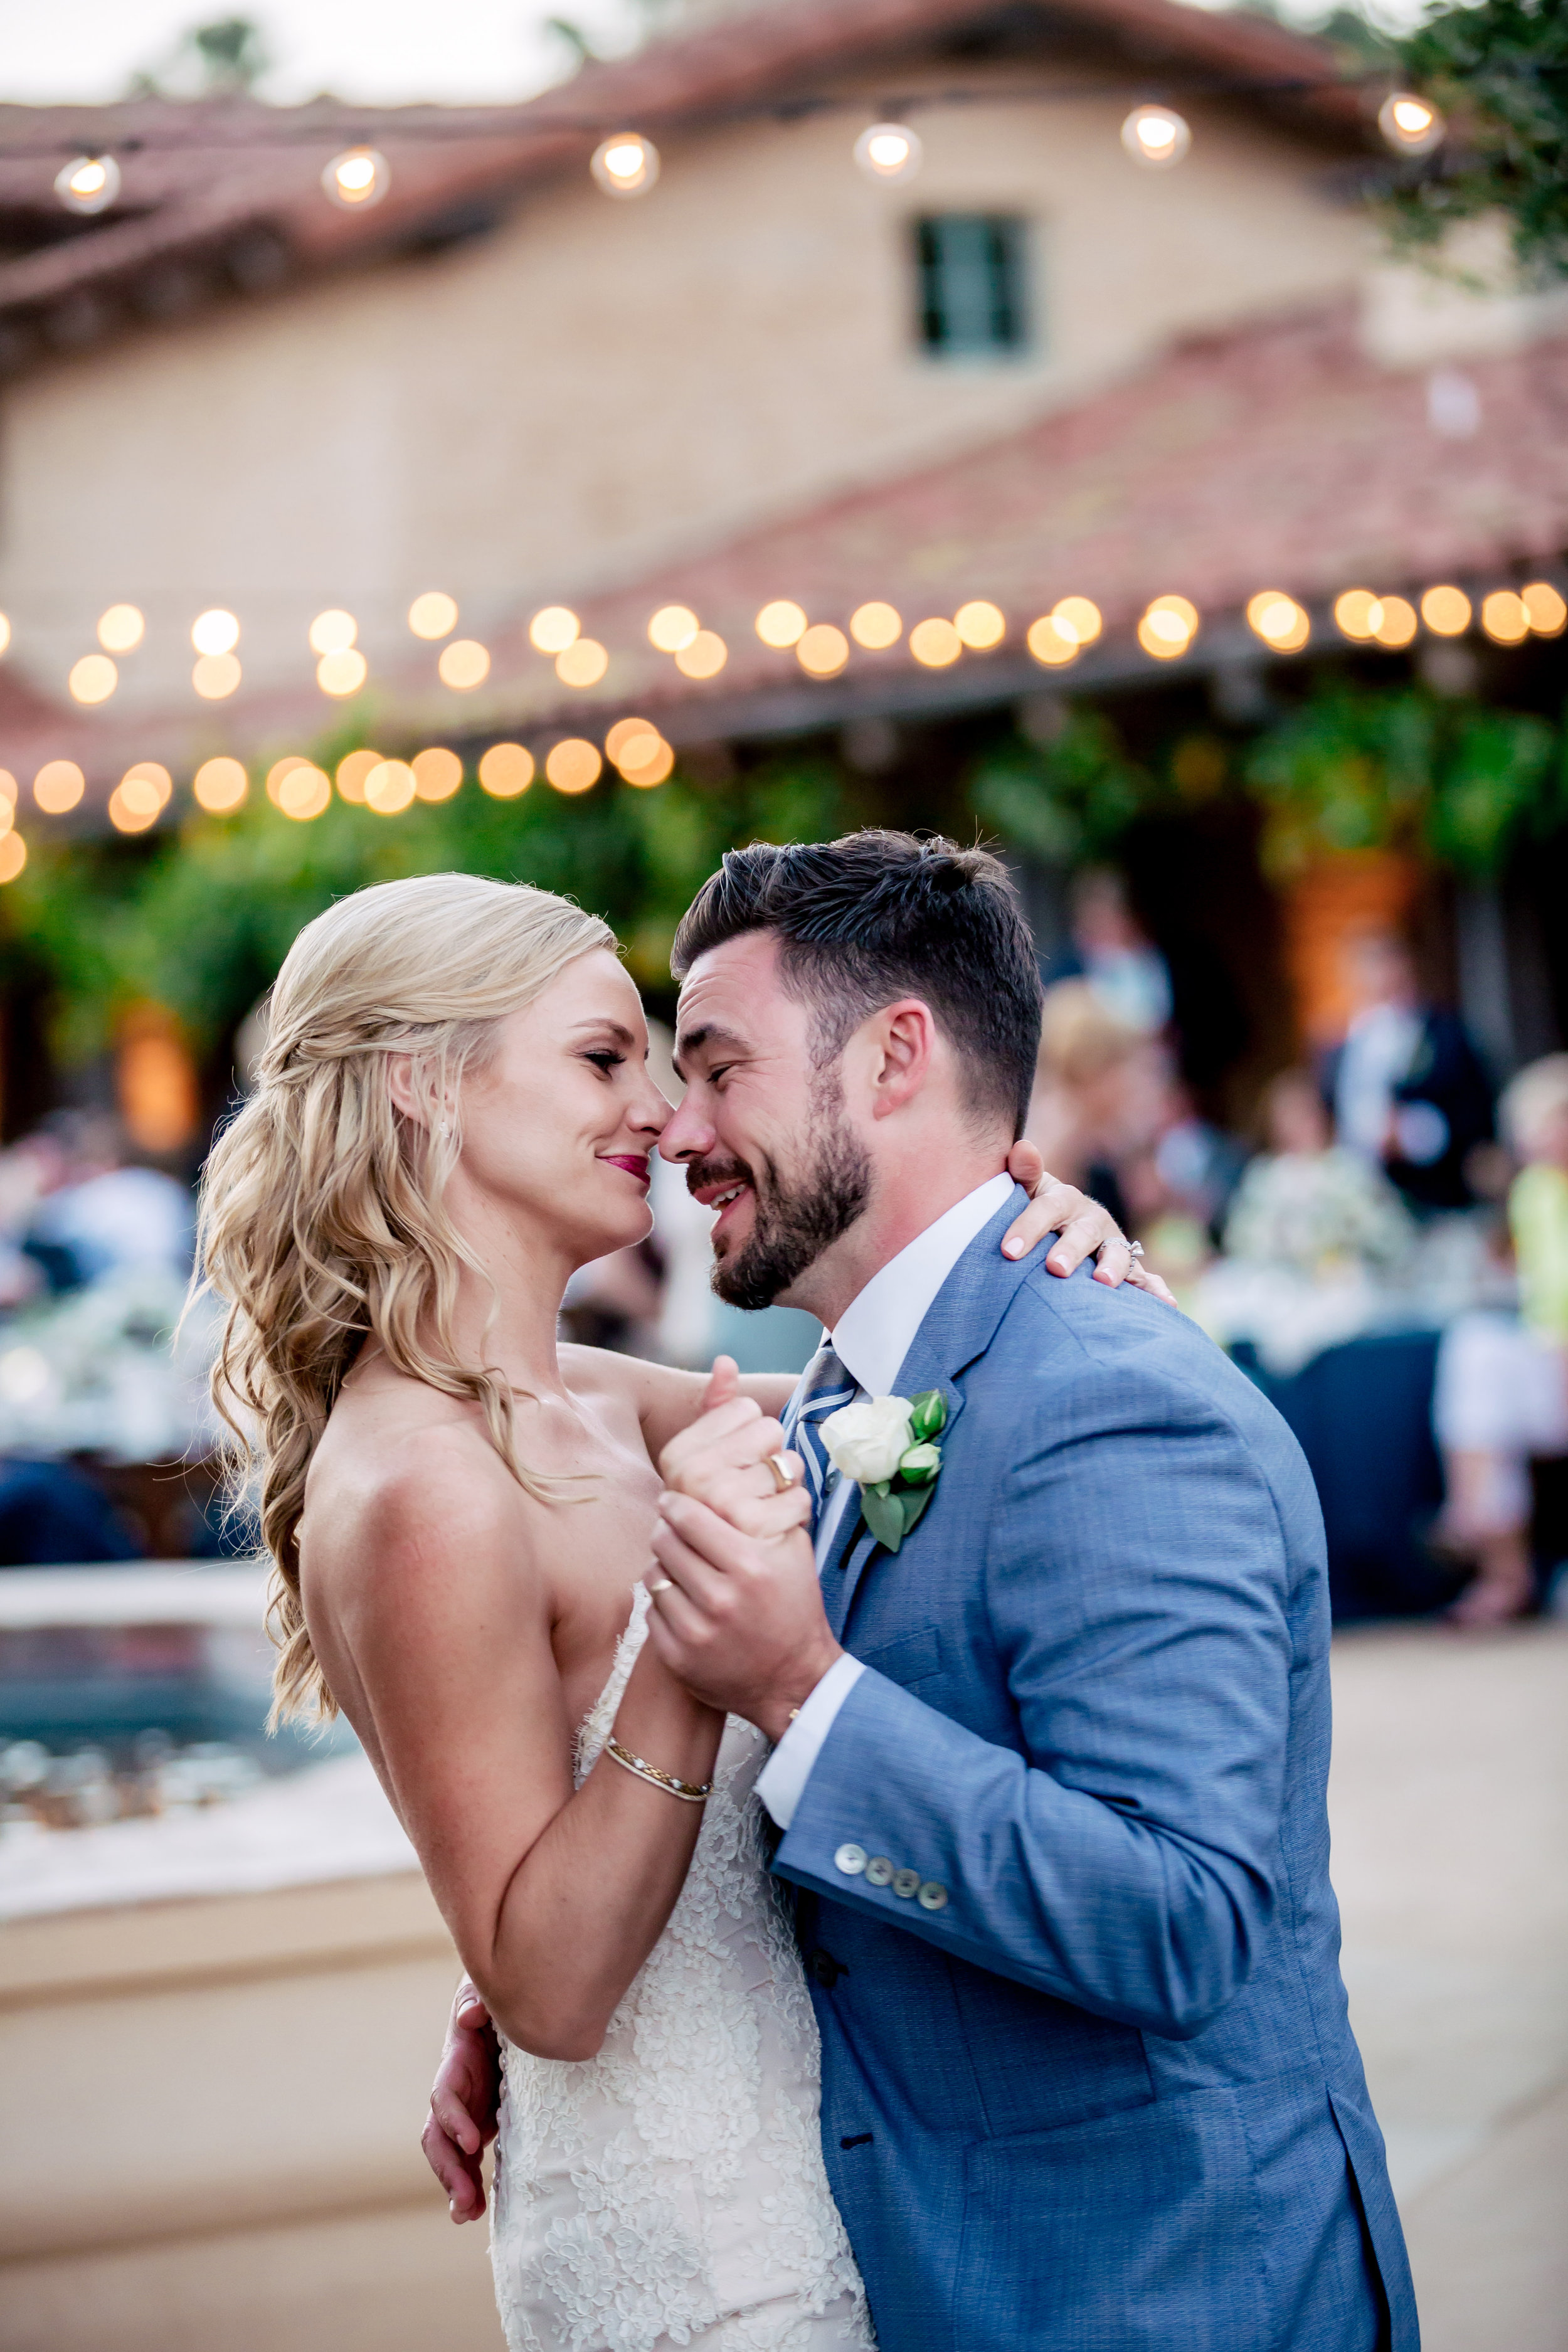 www.santabarbarawedding.com | Rewind Photography | Santa Barbara Historical Museum | Events by M and M | The Couple Shares Their First Dance